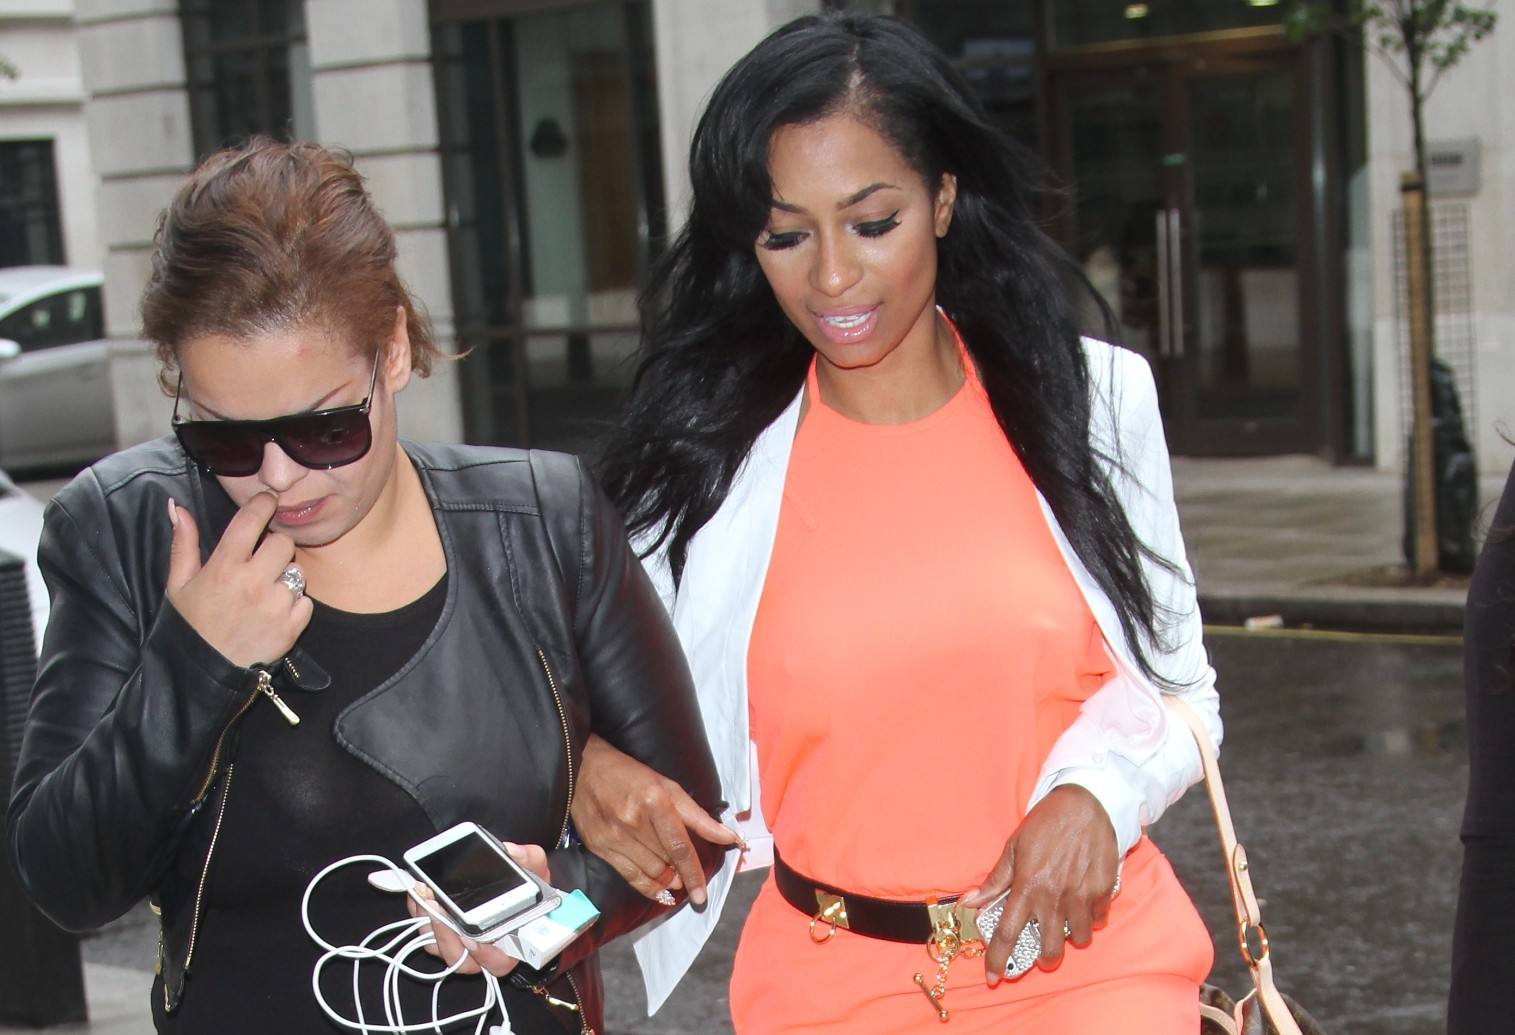 Karlie Redd Beaten To A Pulp By Love & Hip Hop Co-Stars?